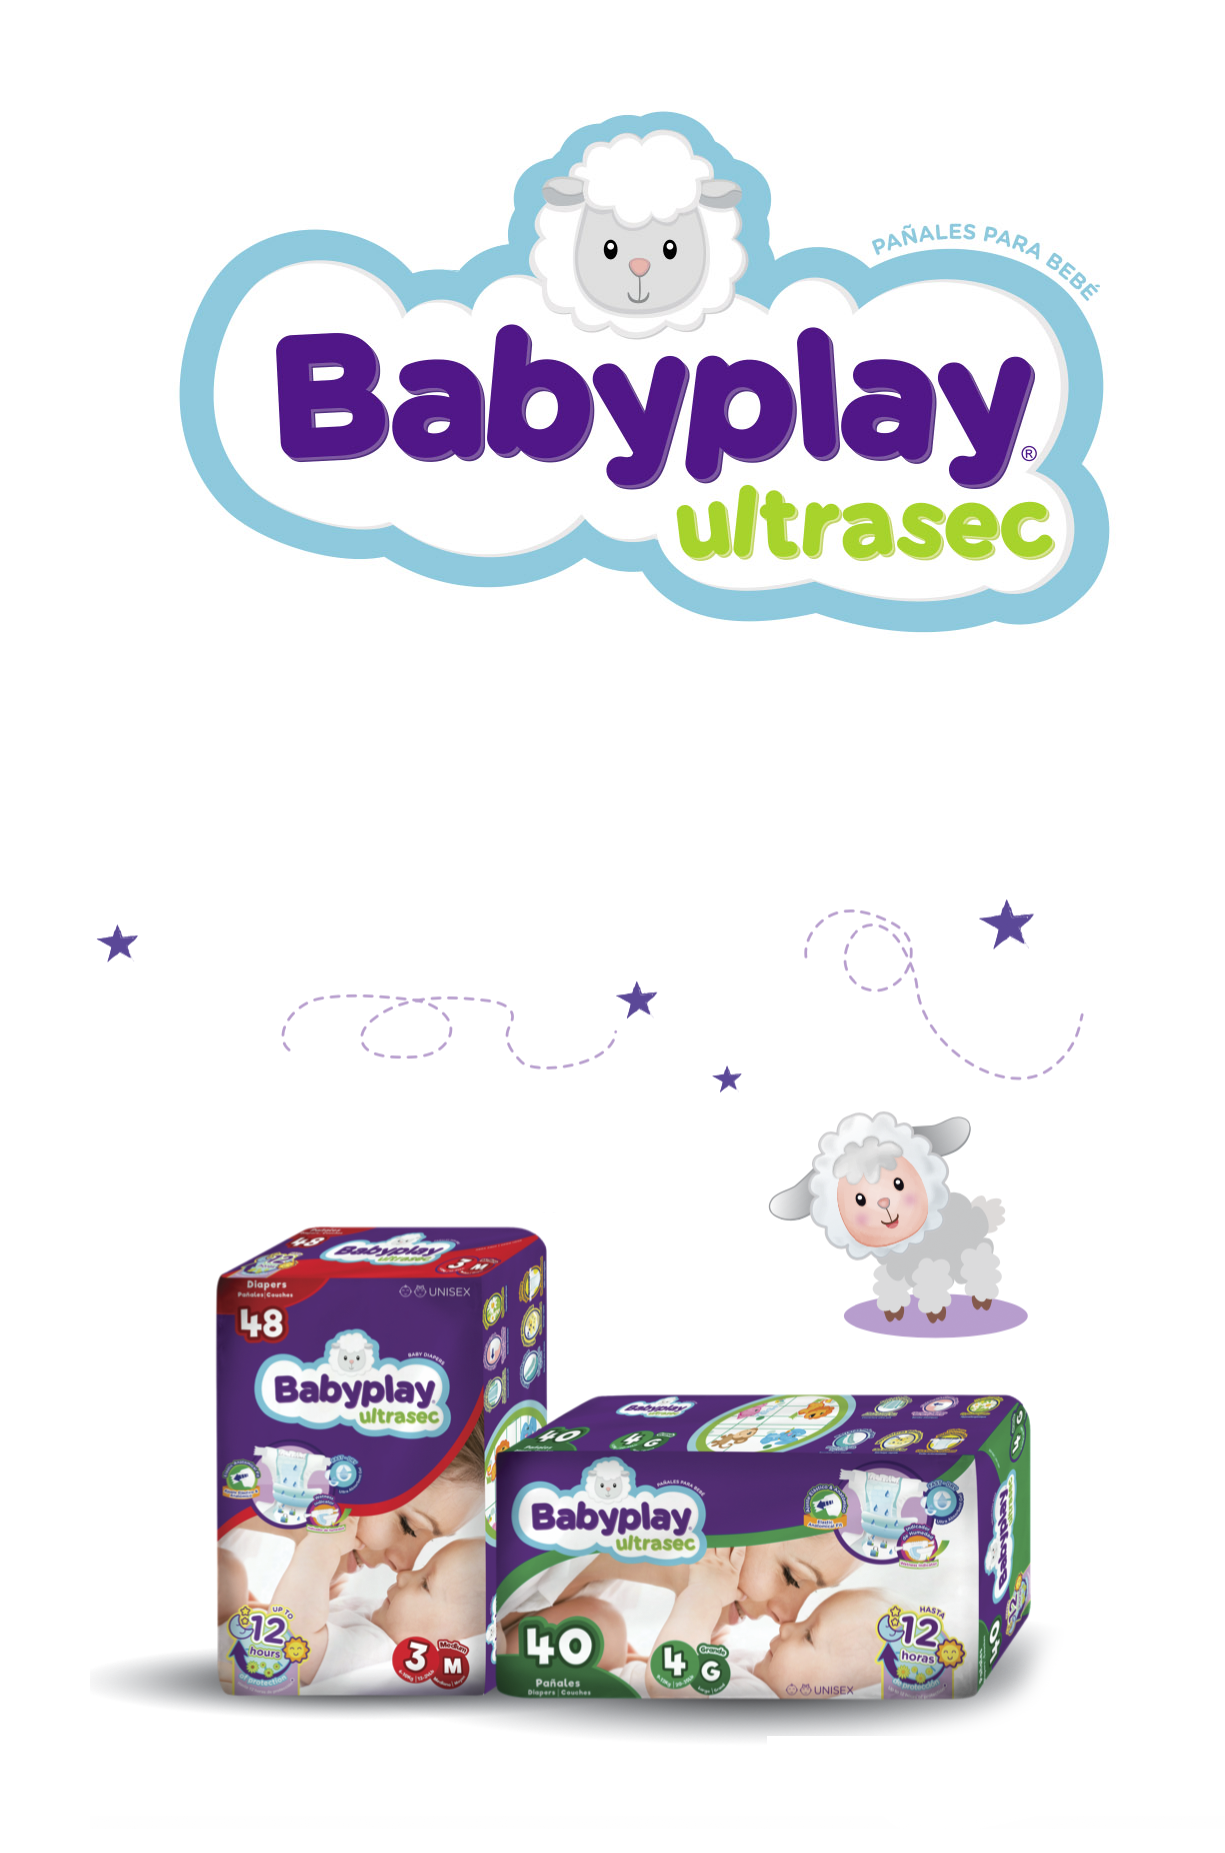 img_marcas_divisionbebe_babyplay_ultrasec